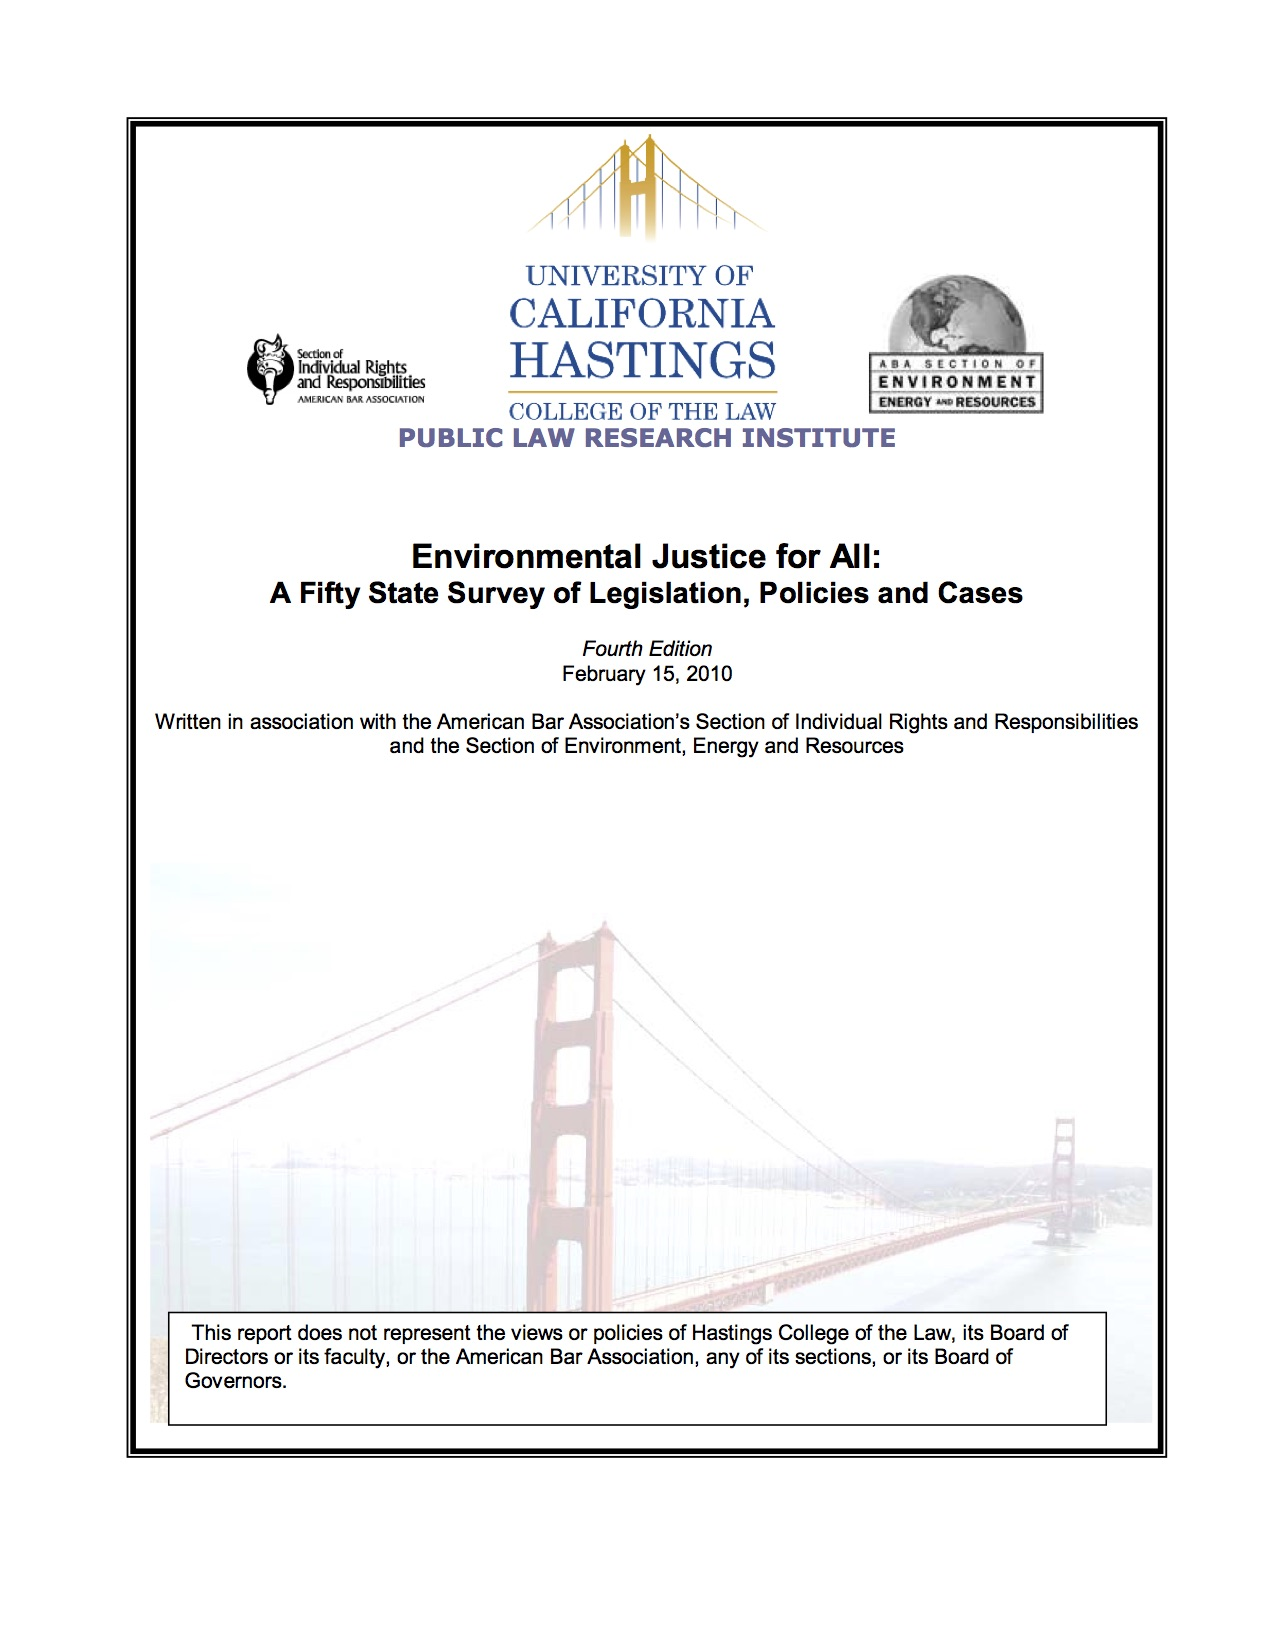 Environmental Justice for All: A Fifty State Survey of Legislation, Policies and Cases, 4th ed. (2010)